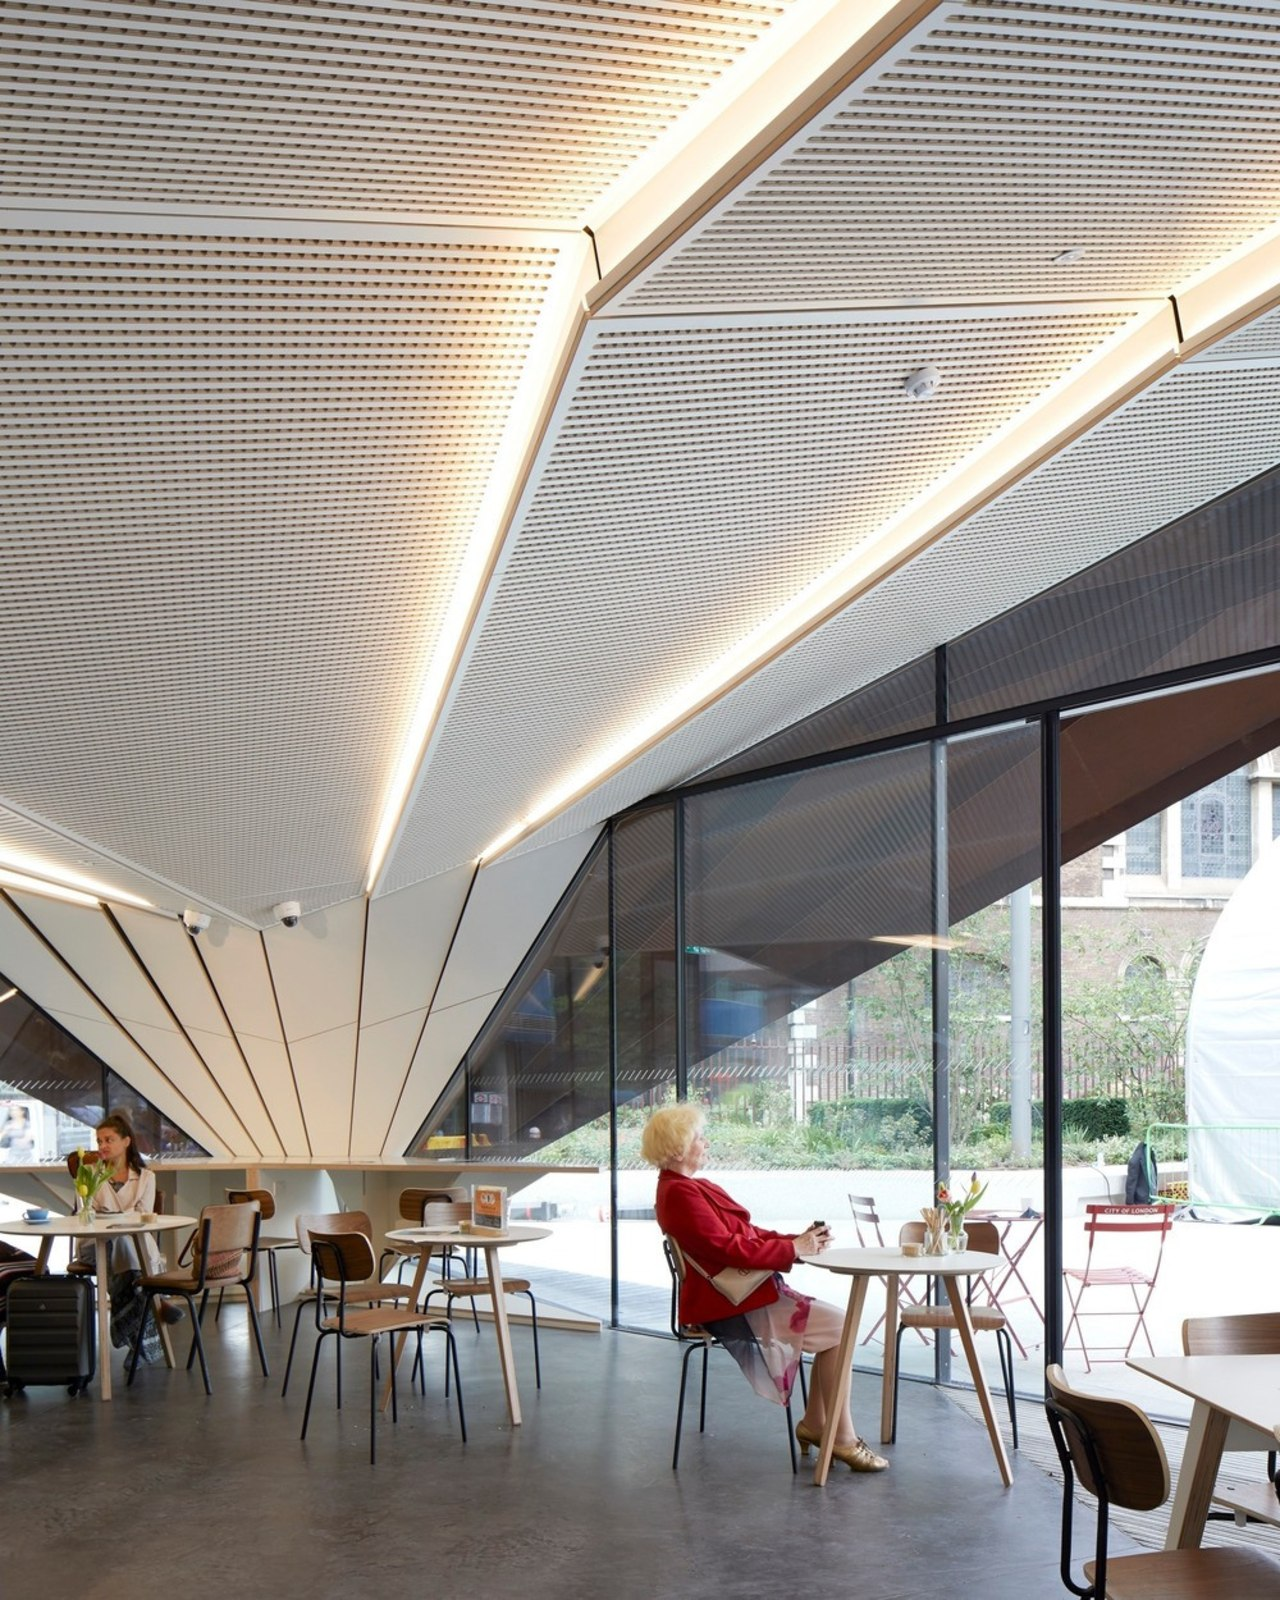 The pavilion houses a community enterprise cafe but architecture, canopy, ceiling, daylighting, interior design, roof, shade, white, gray